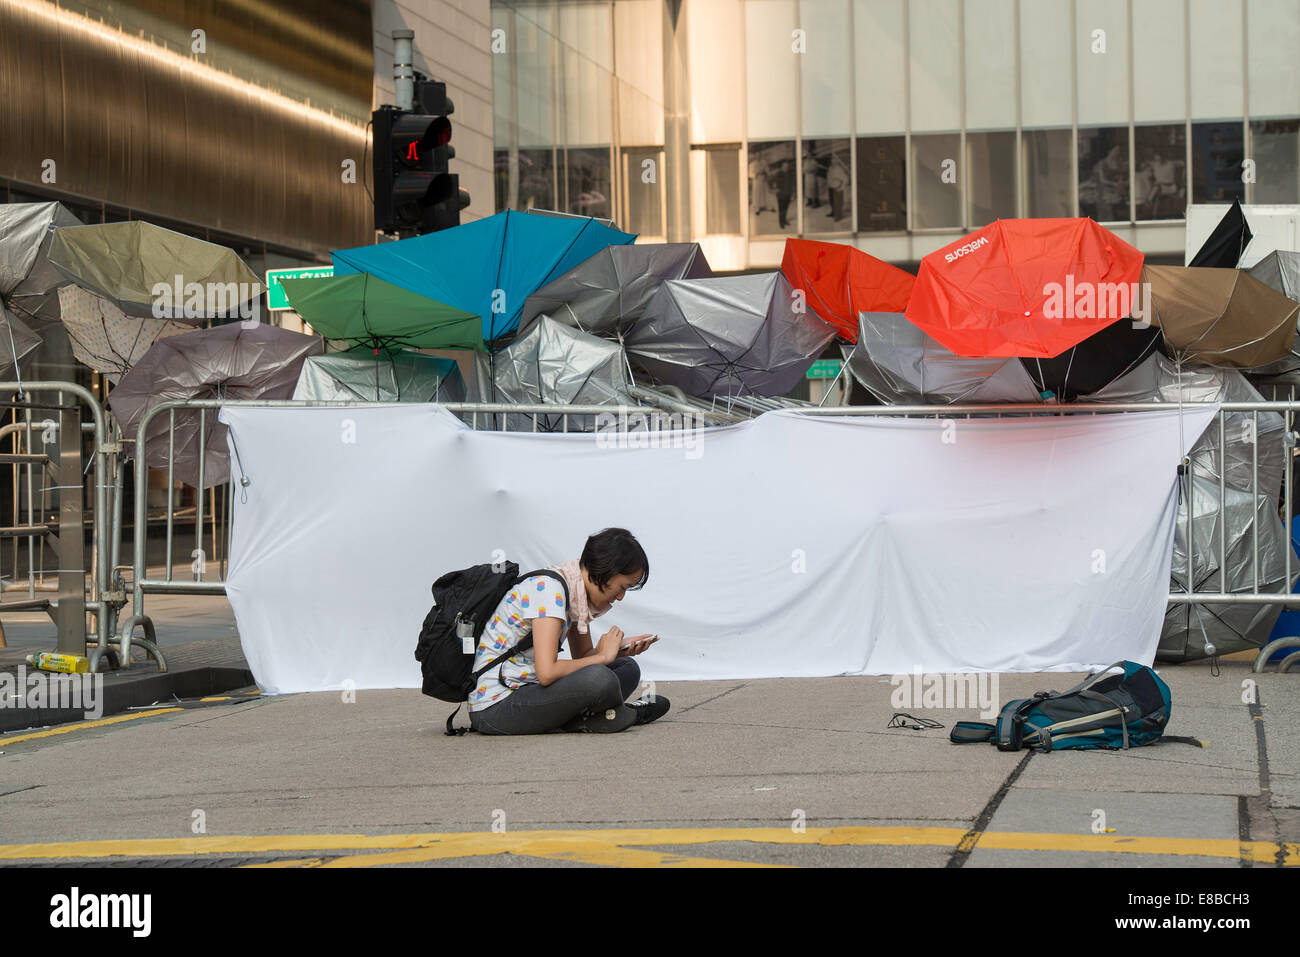 Making sure the outer barriers are watched, this lone protester spends time on her smartphone keeping in touch with - Stock Image